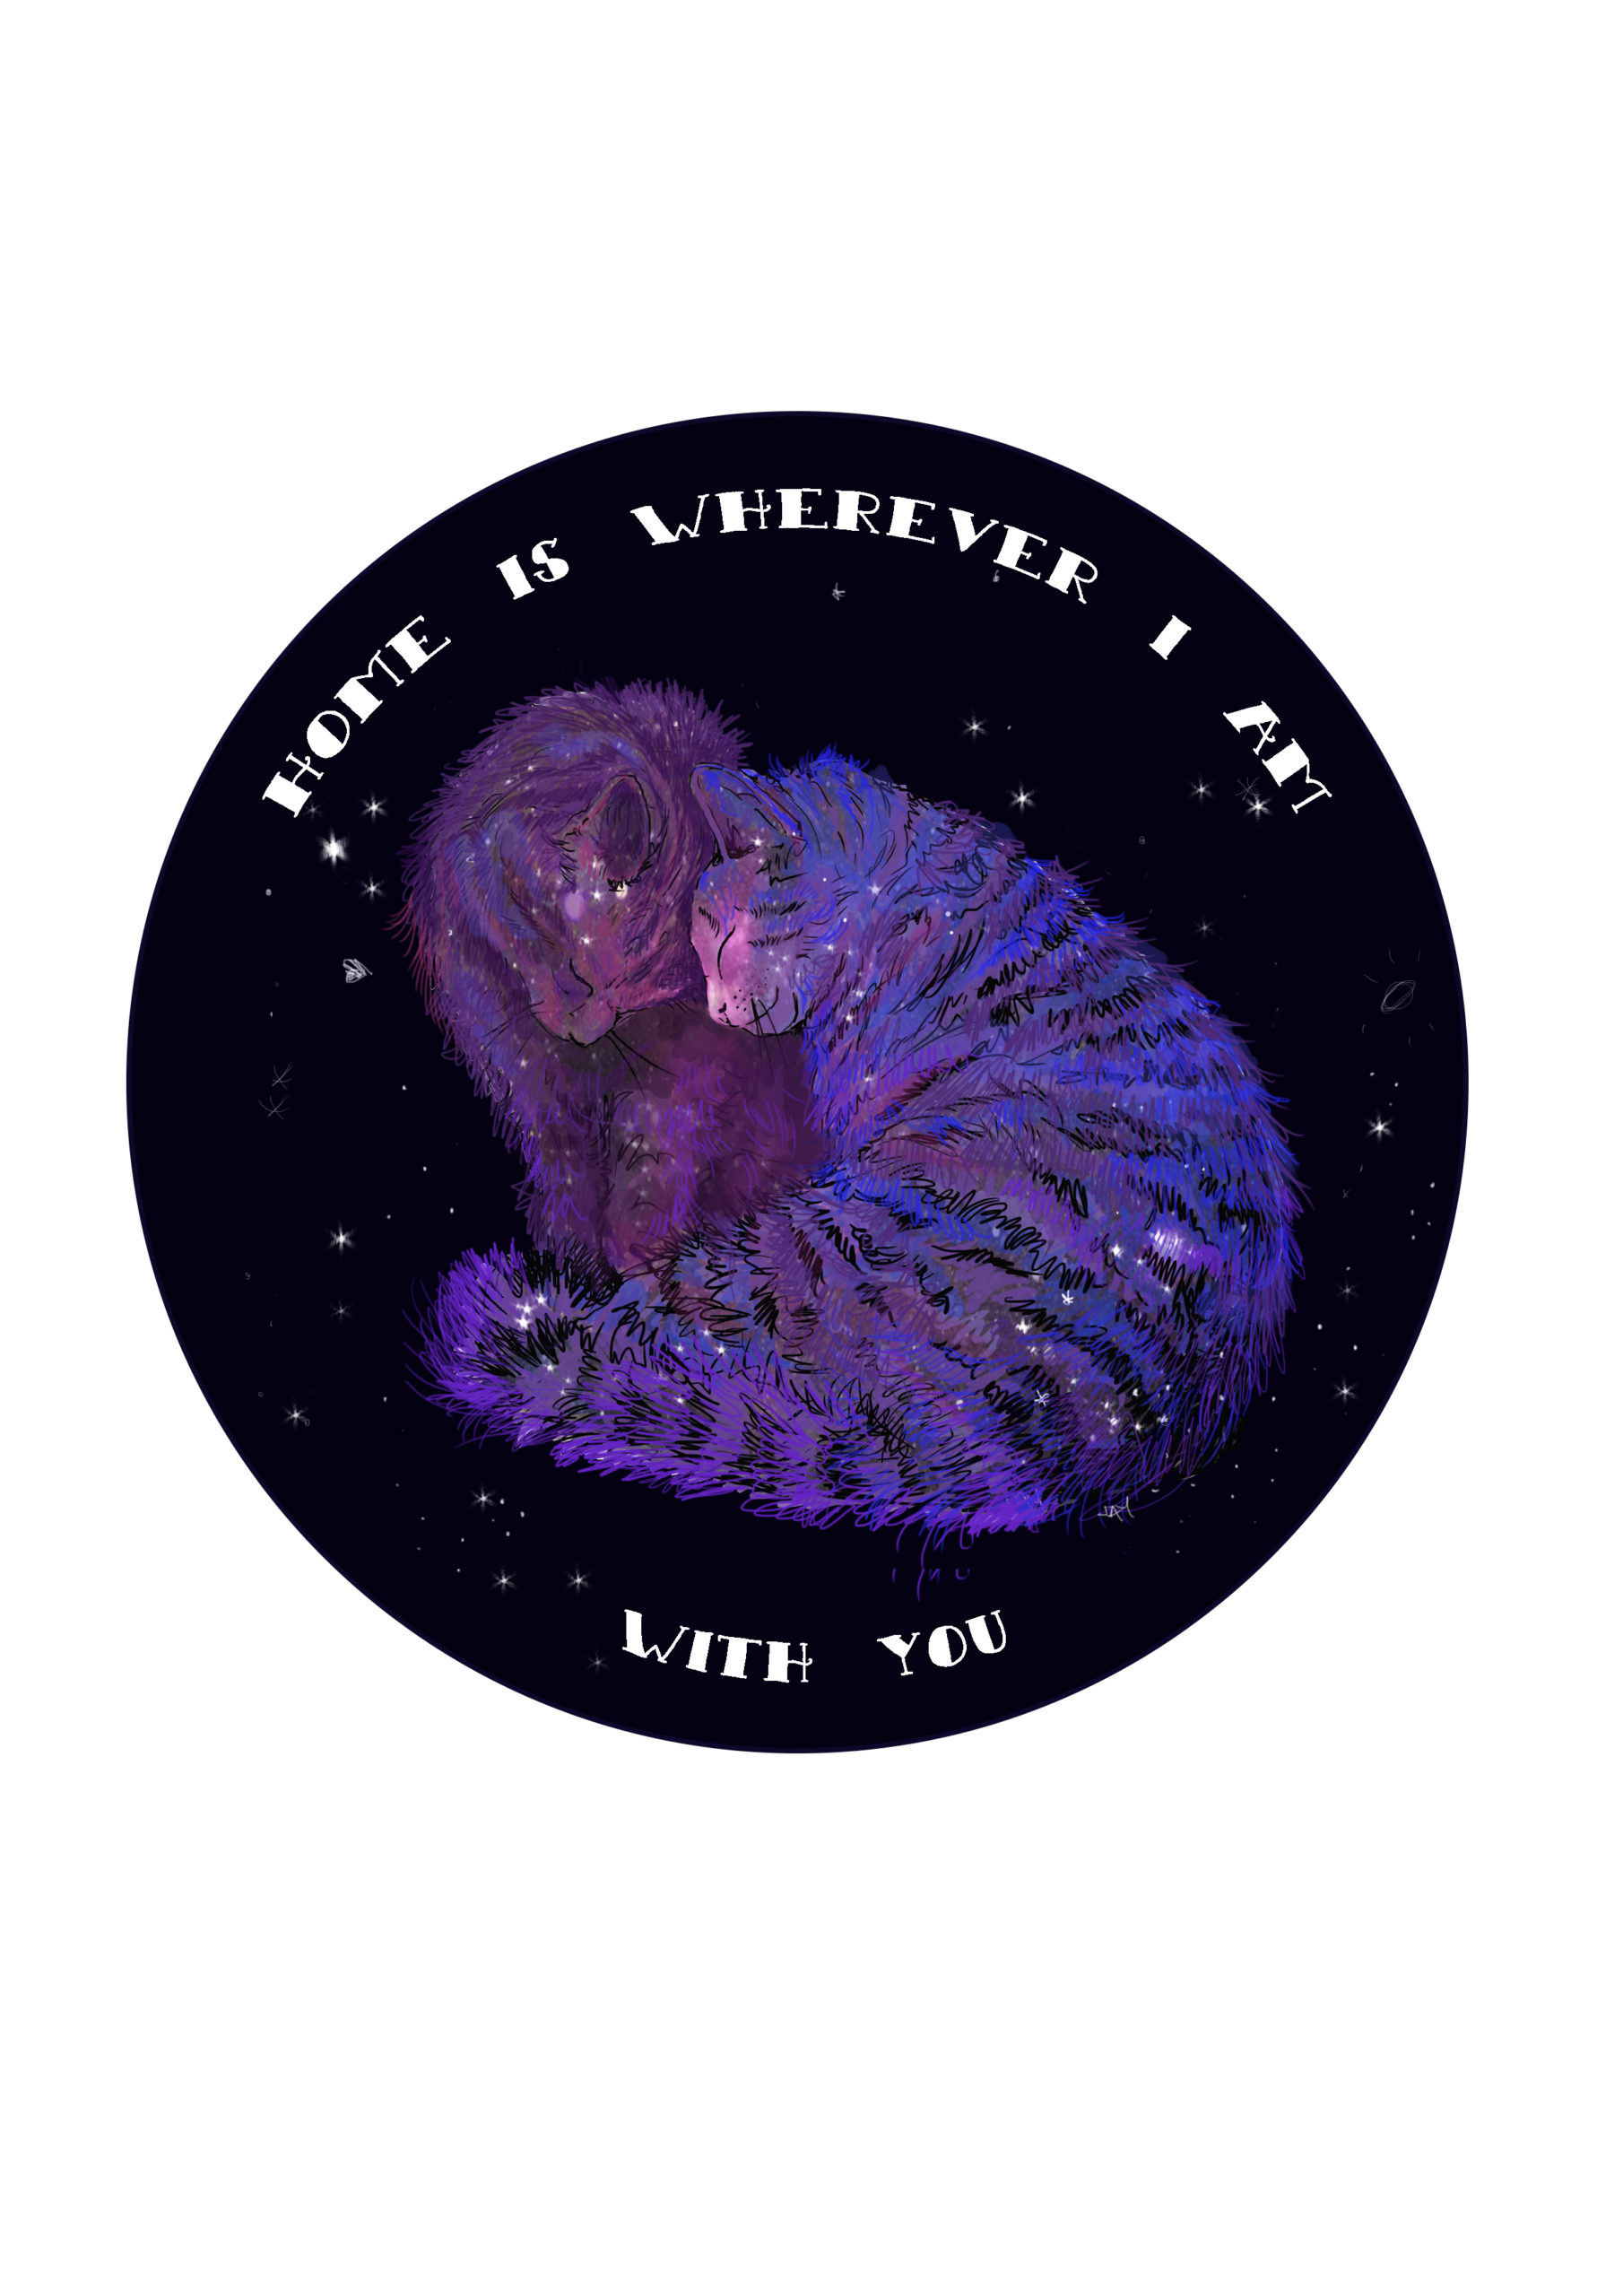 Space cats. Home is wherever I am with you – A4 art print via @chooicenz